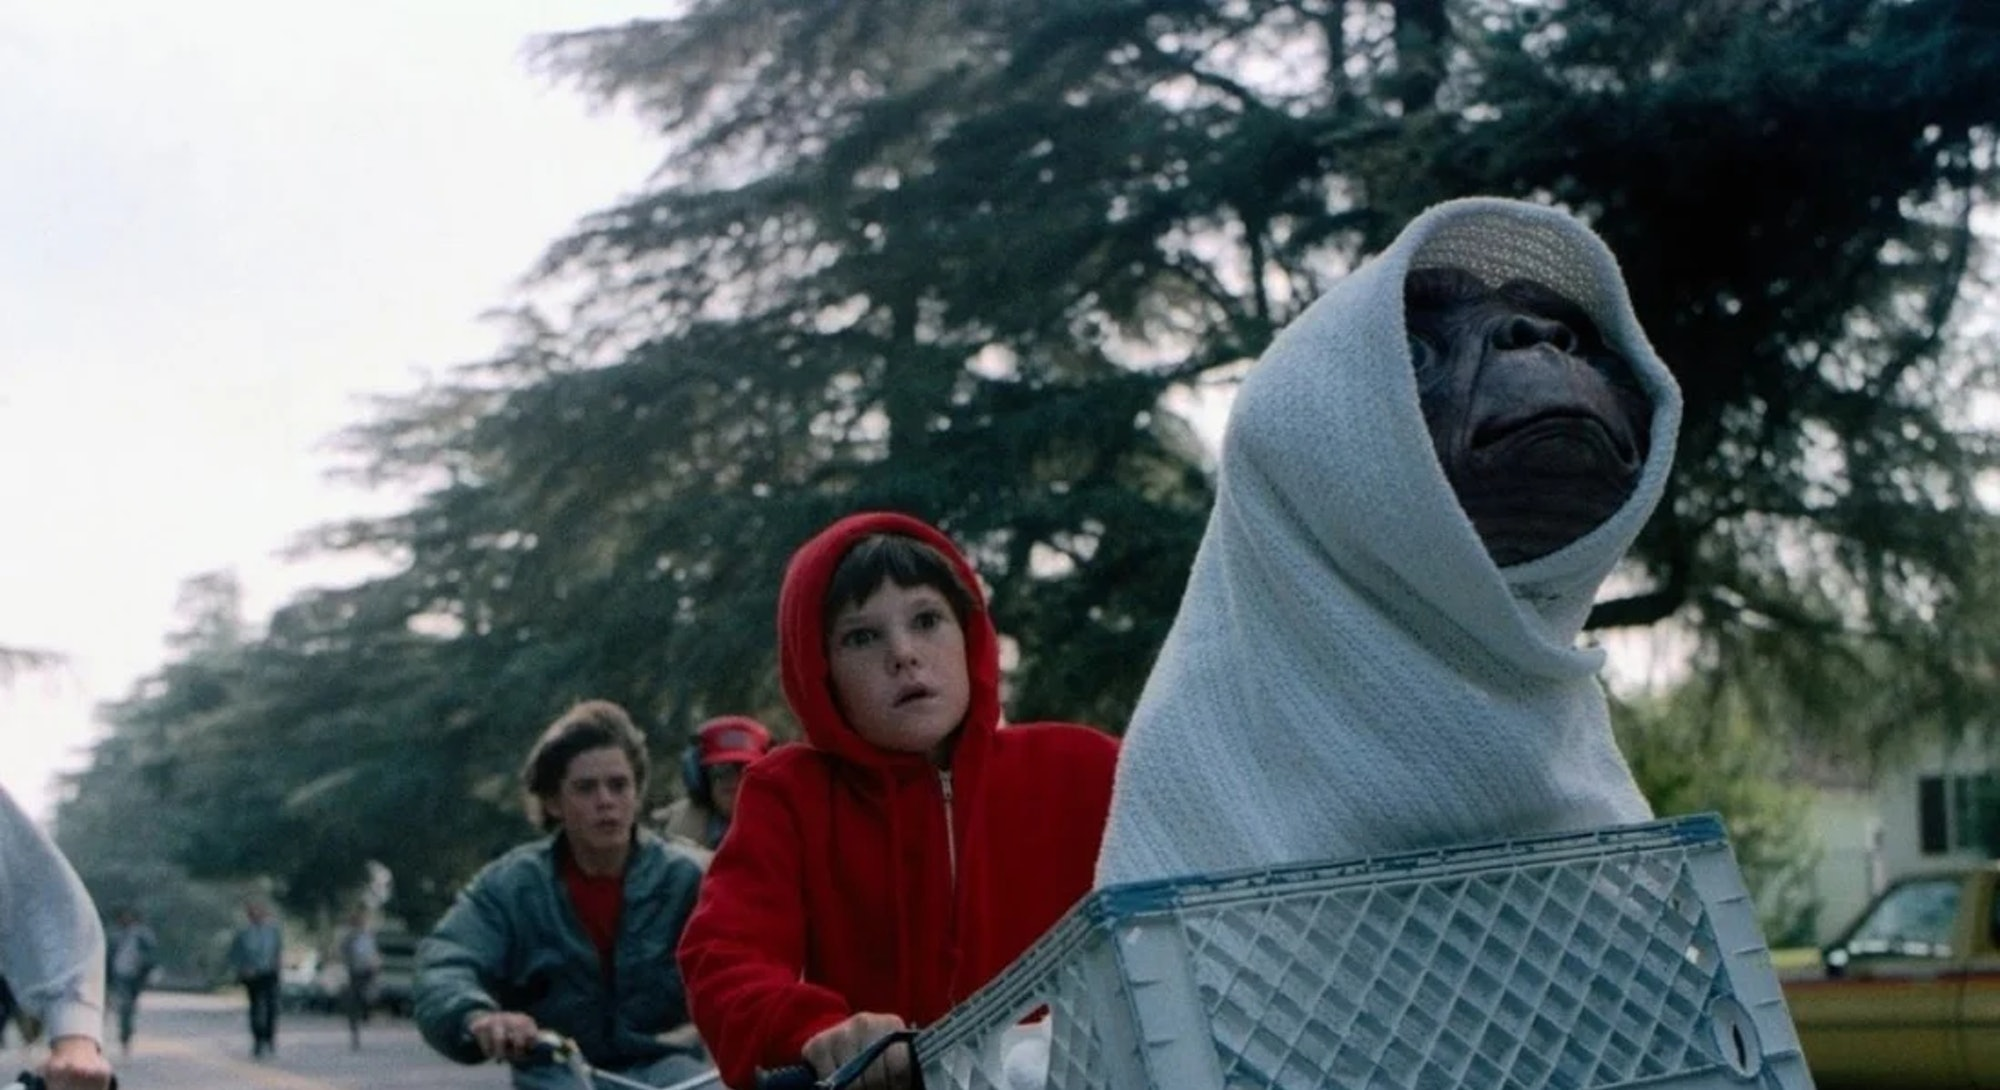 E.T. riding in bike basket from E.T. the Extraterrestrial